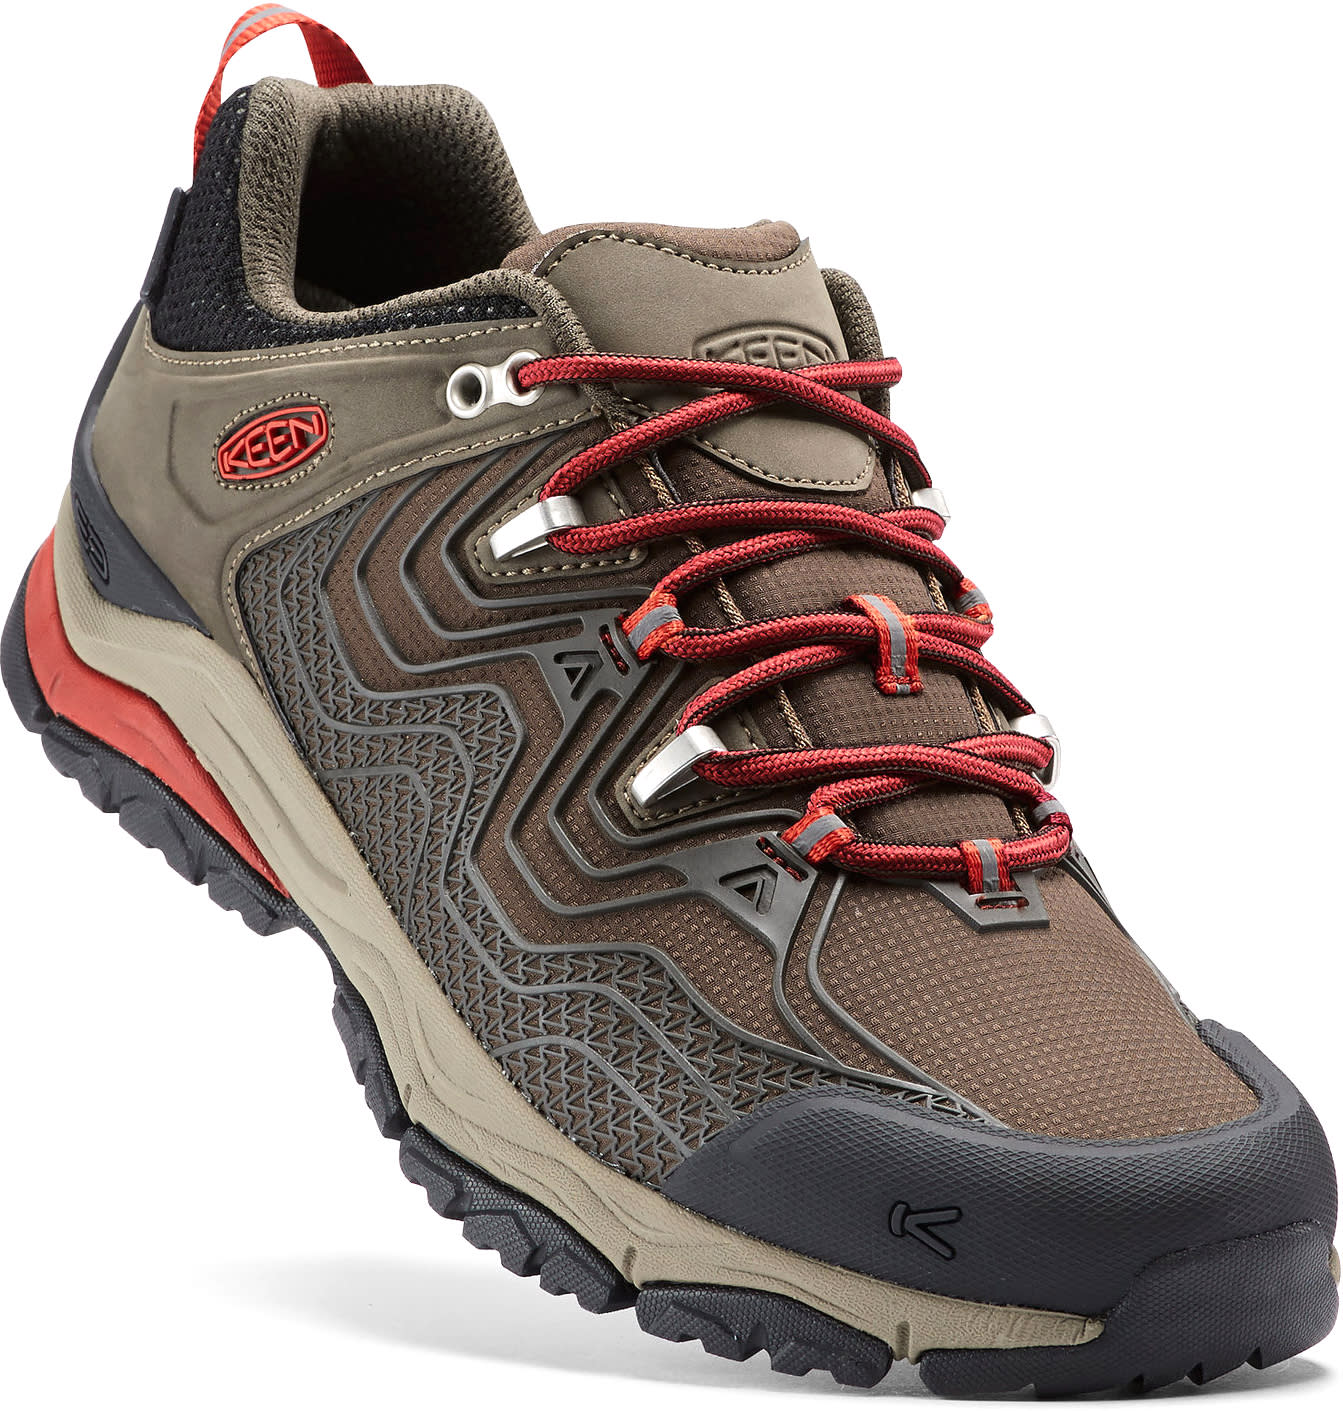 Keen Lightweight Shoes